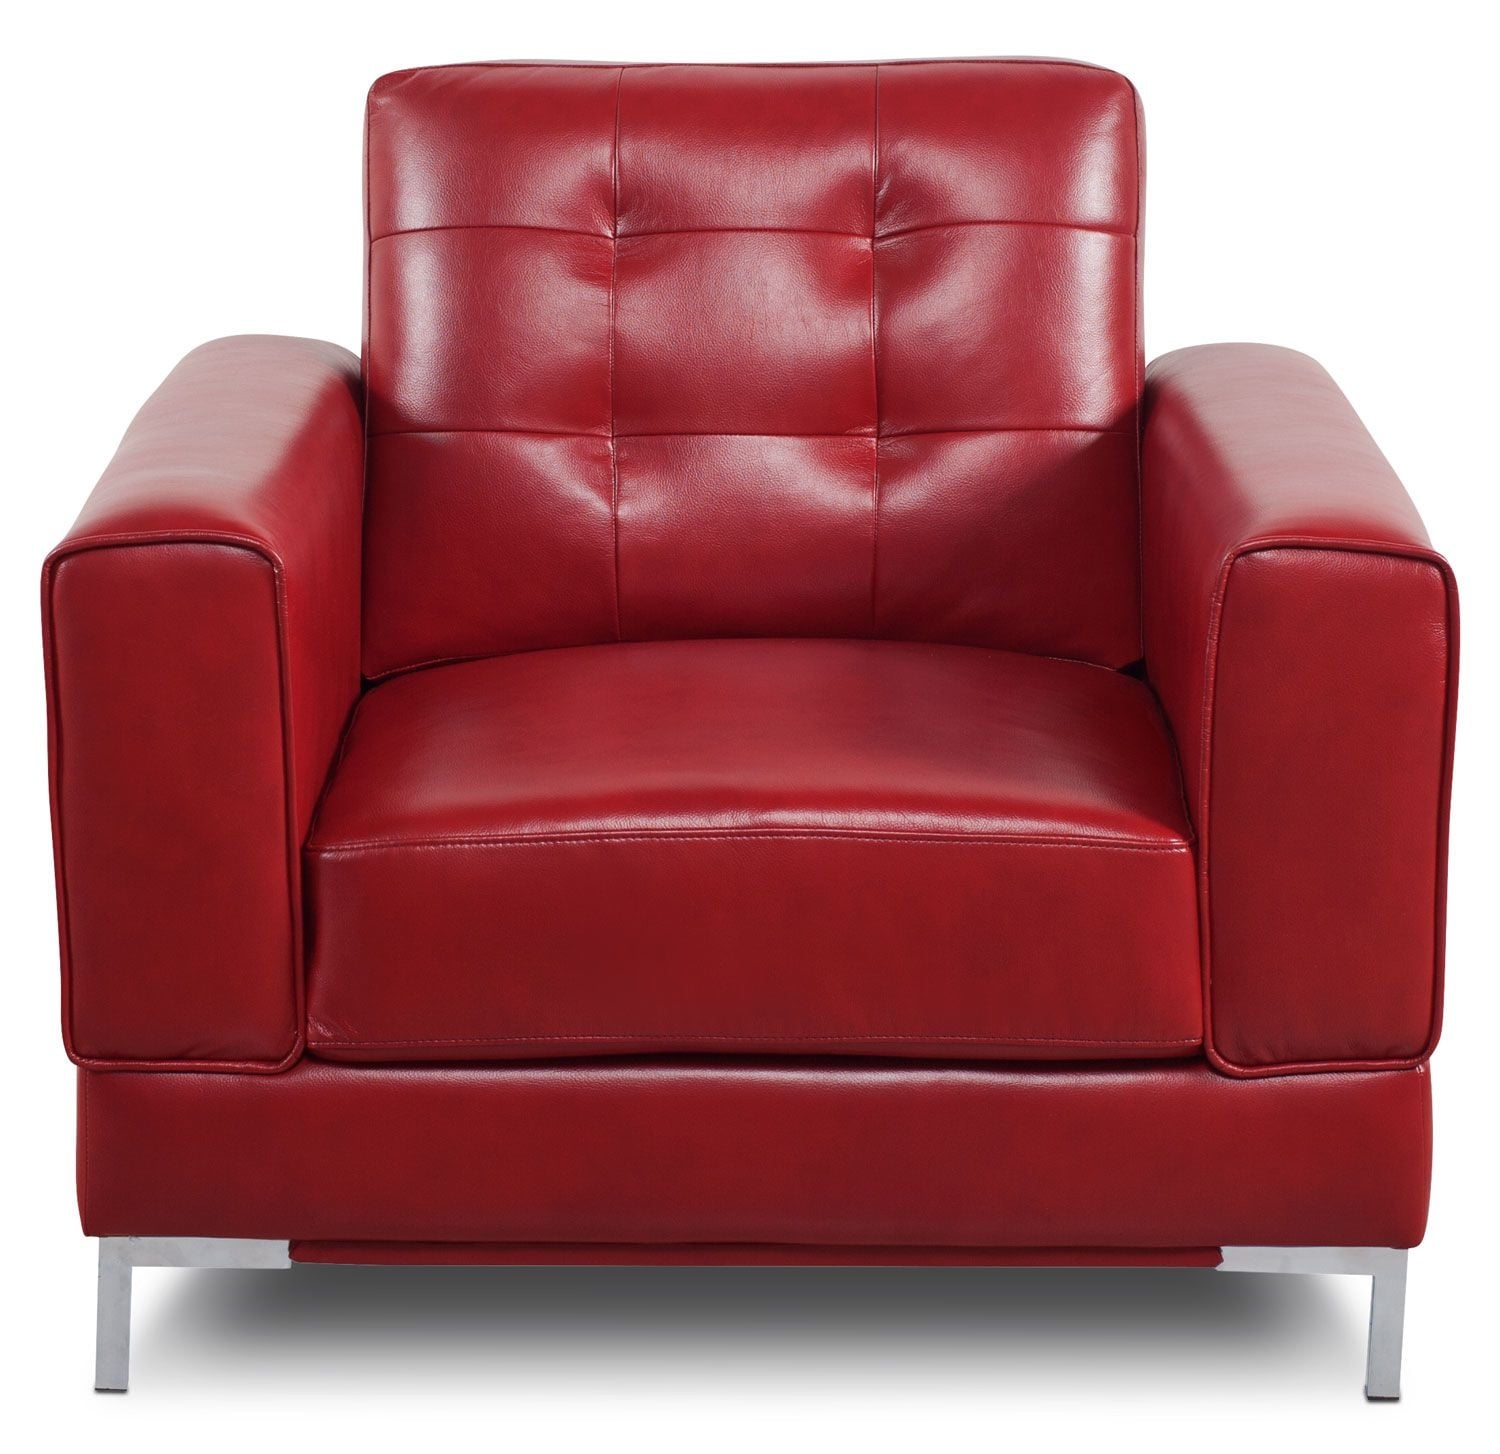 leather fabric chair myer leather look fabric sofa red the brick 16627 | 389661